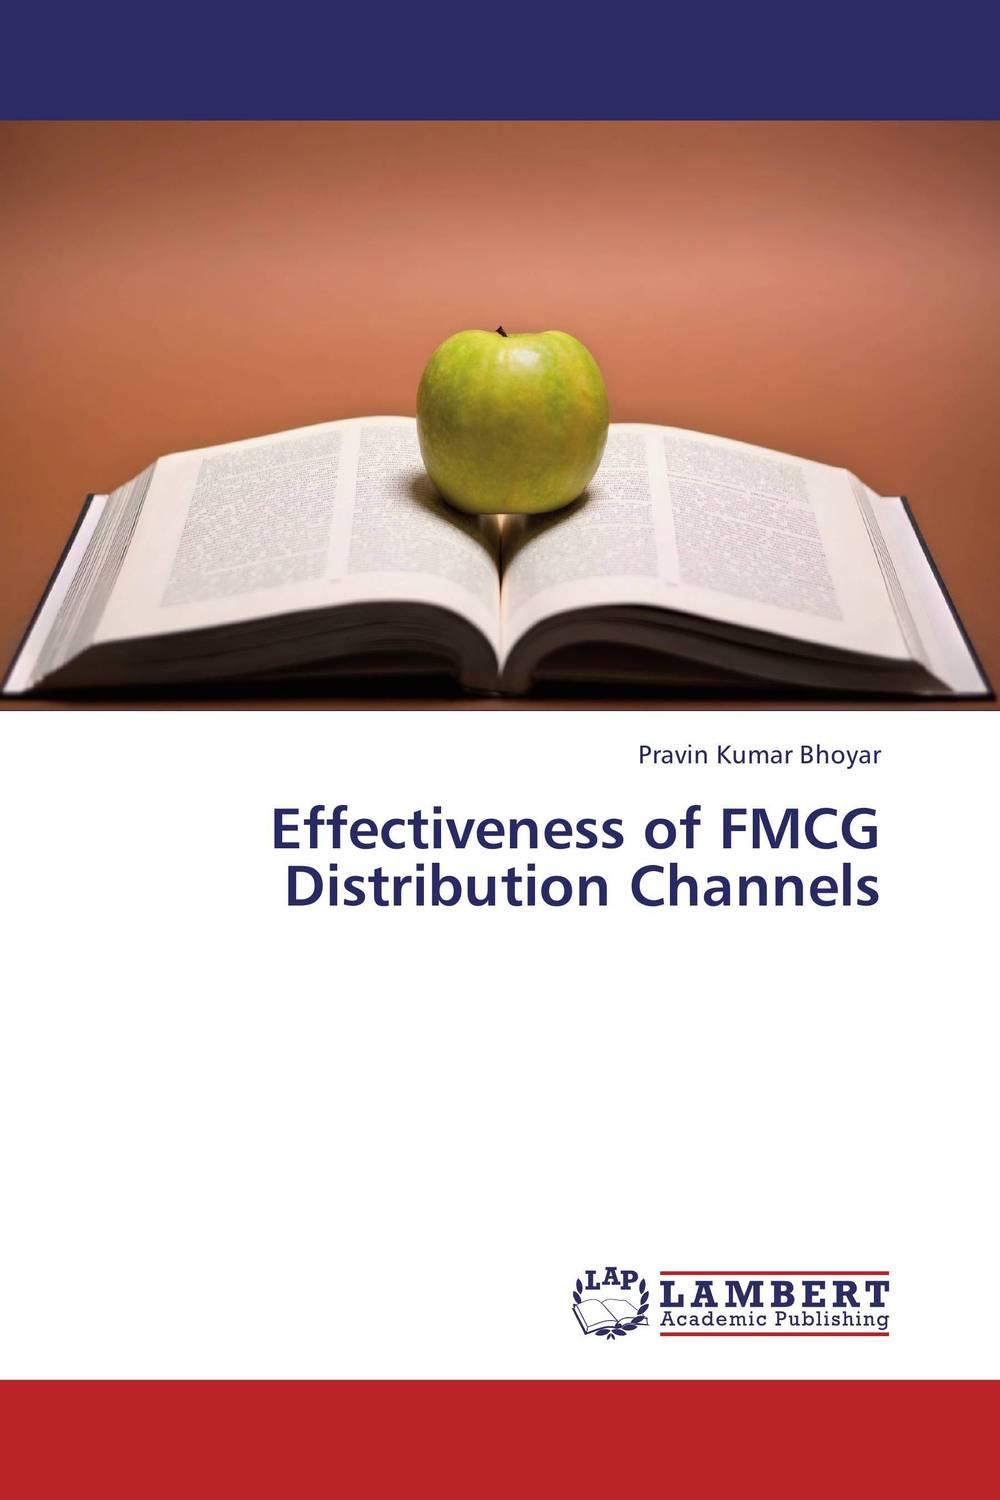 Effectiveness of FMCG Distribution Channels joel greenblatt market sense and nonsense how the markets really work and how they don t